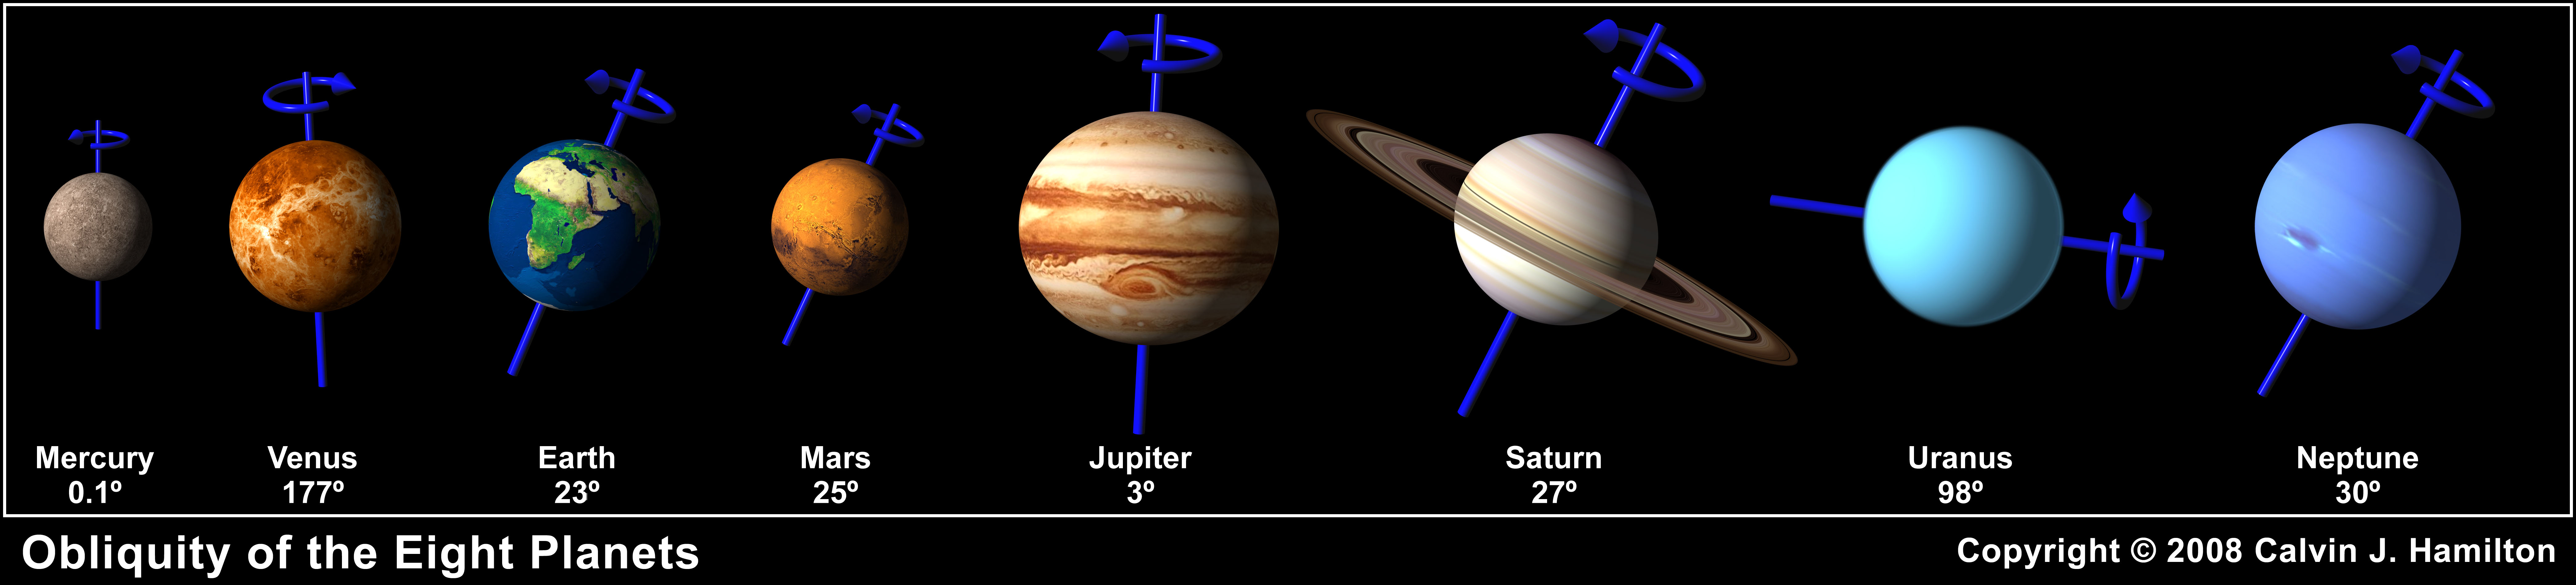 The Solar System Saturn Frame Diagram Planet Obliquity